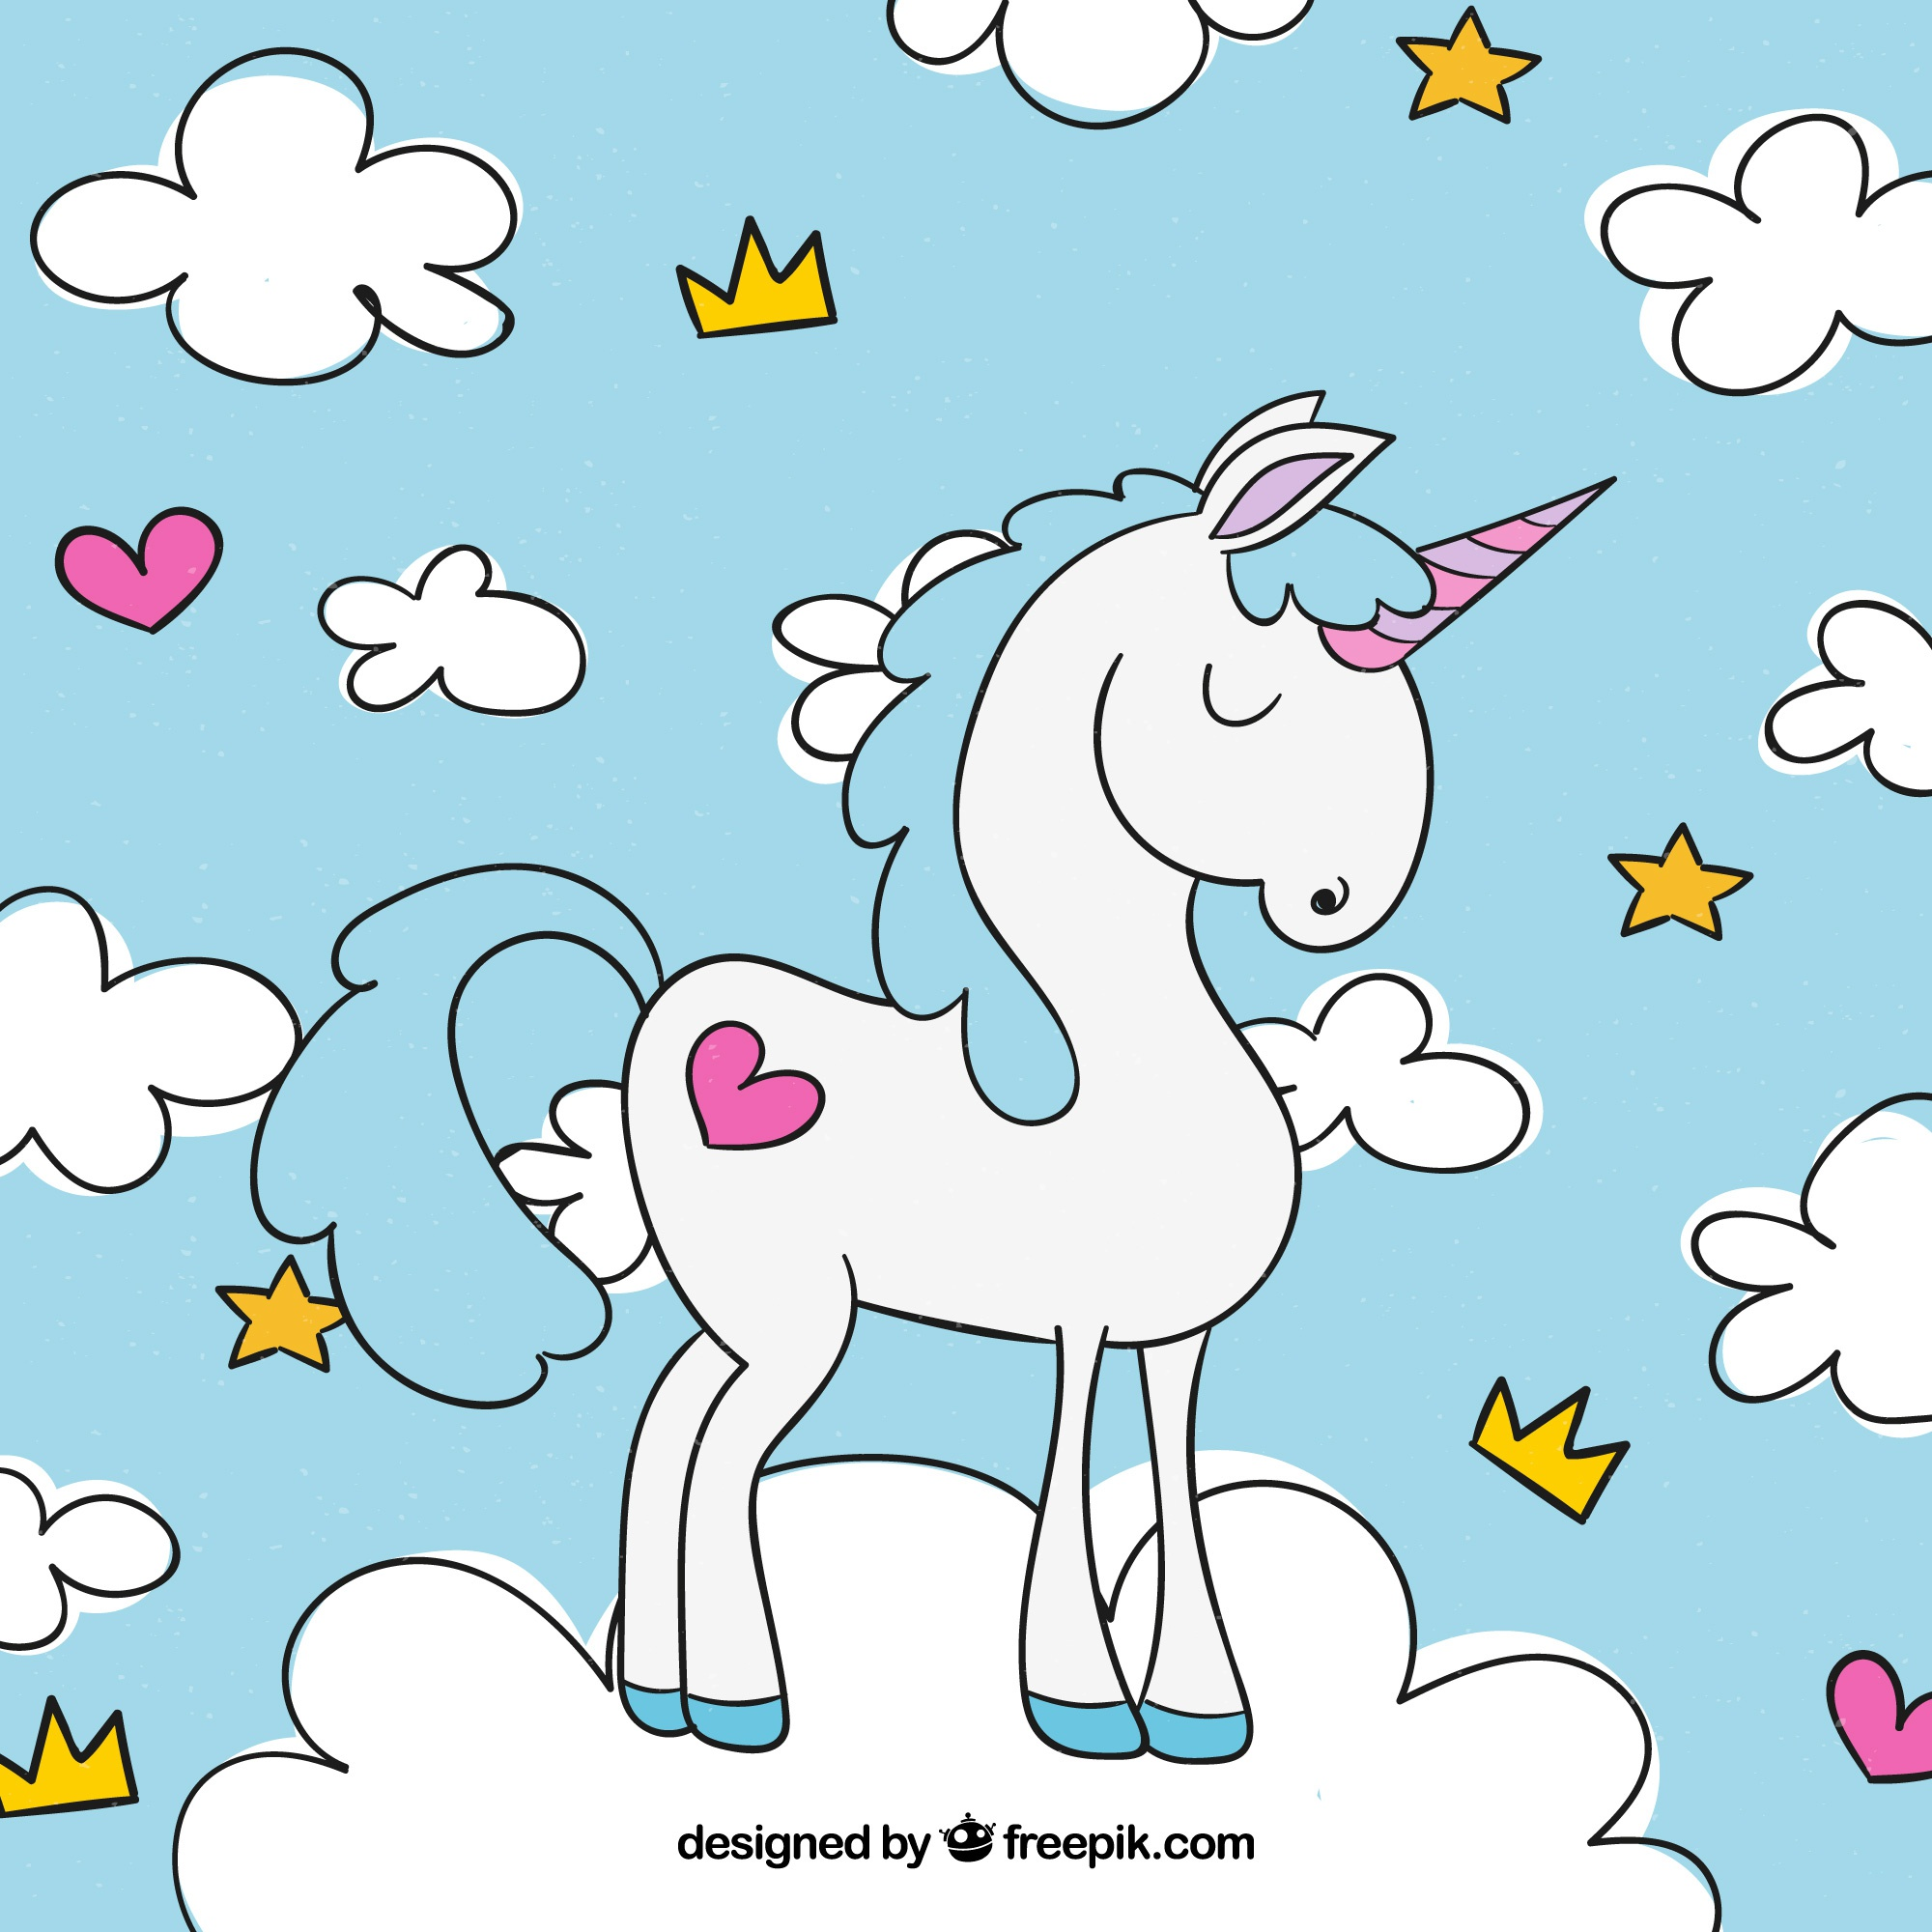 Unicorn background and hand drawn clouds